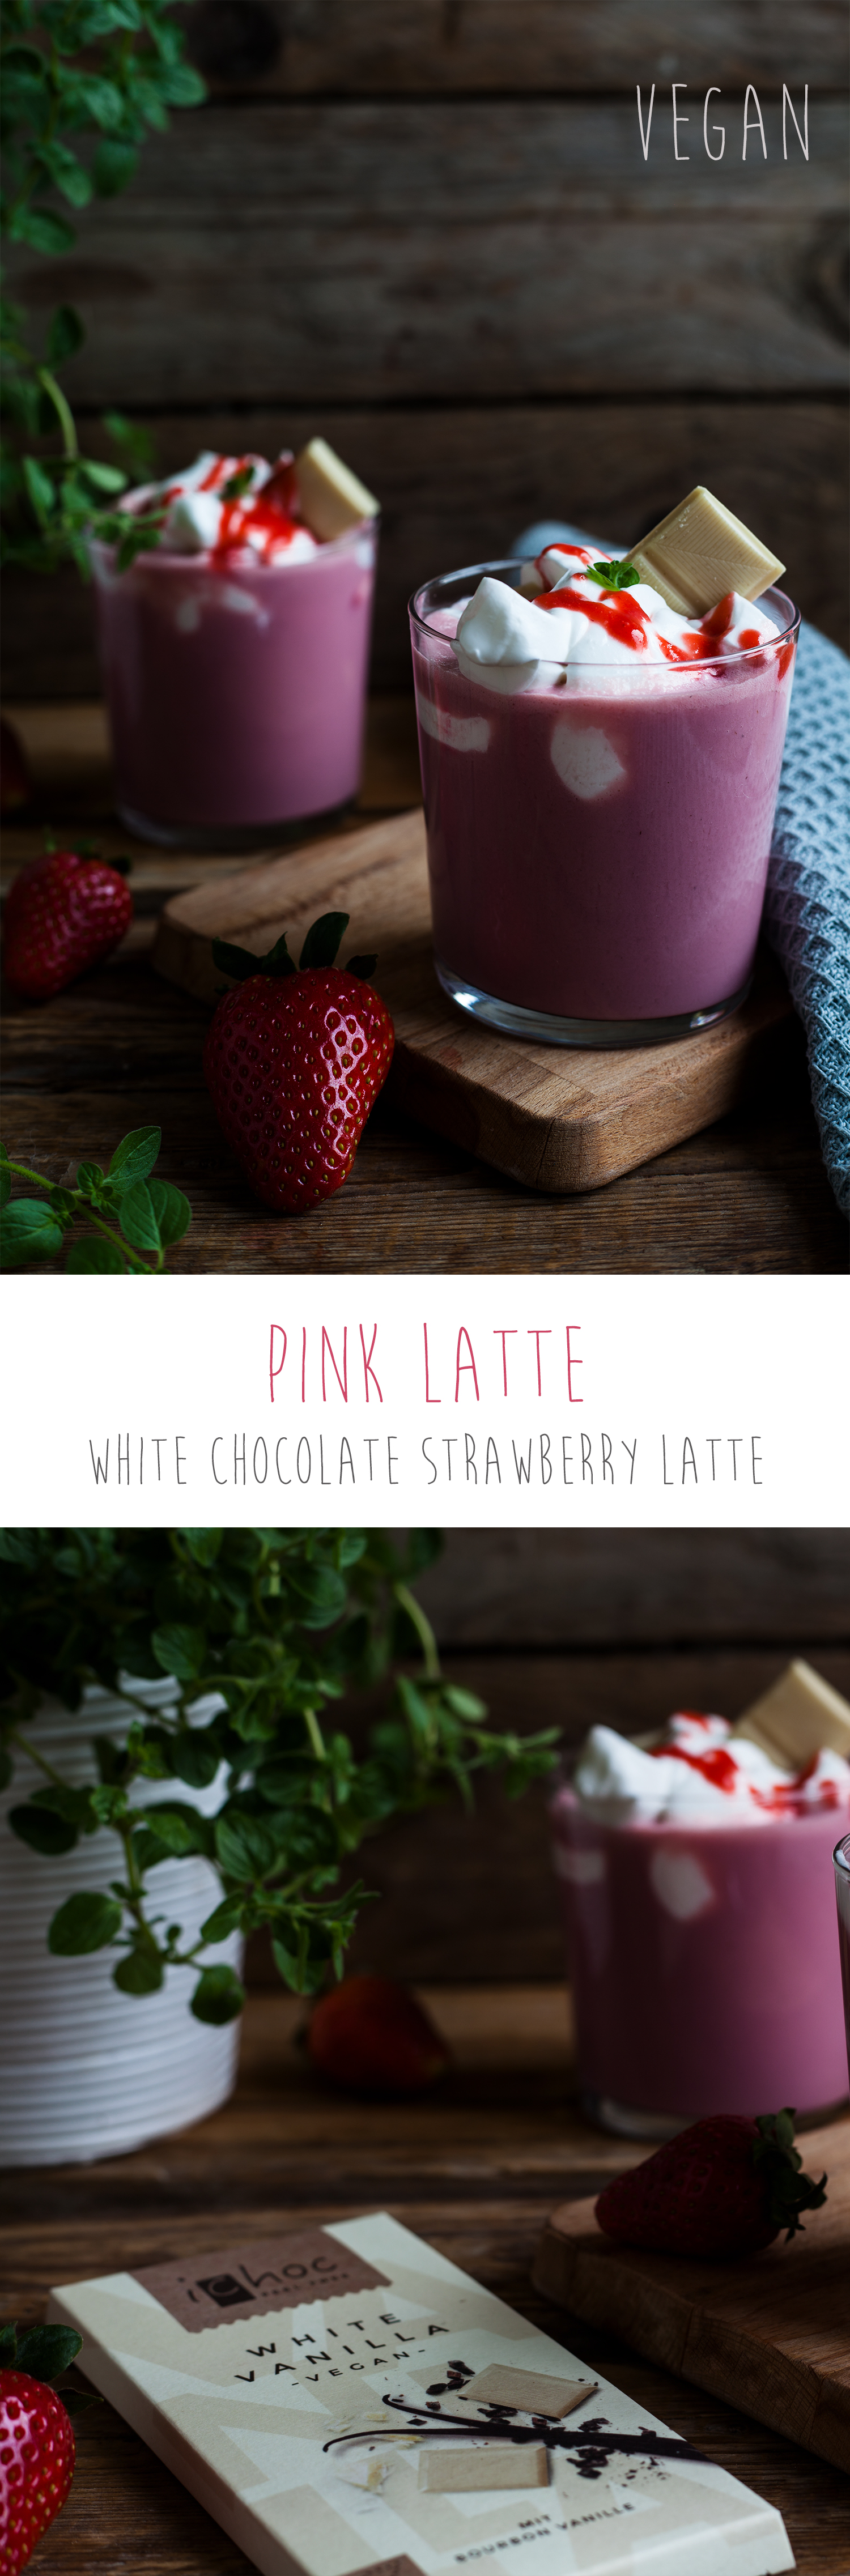 Pink Latte Vegan